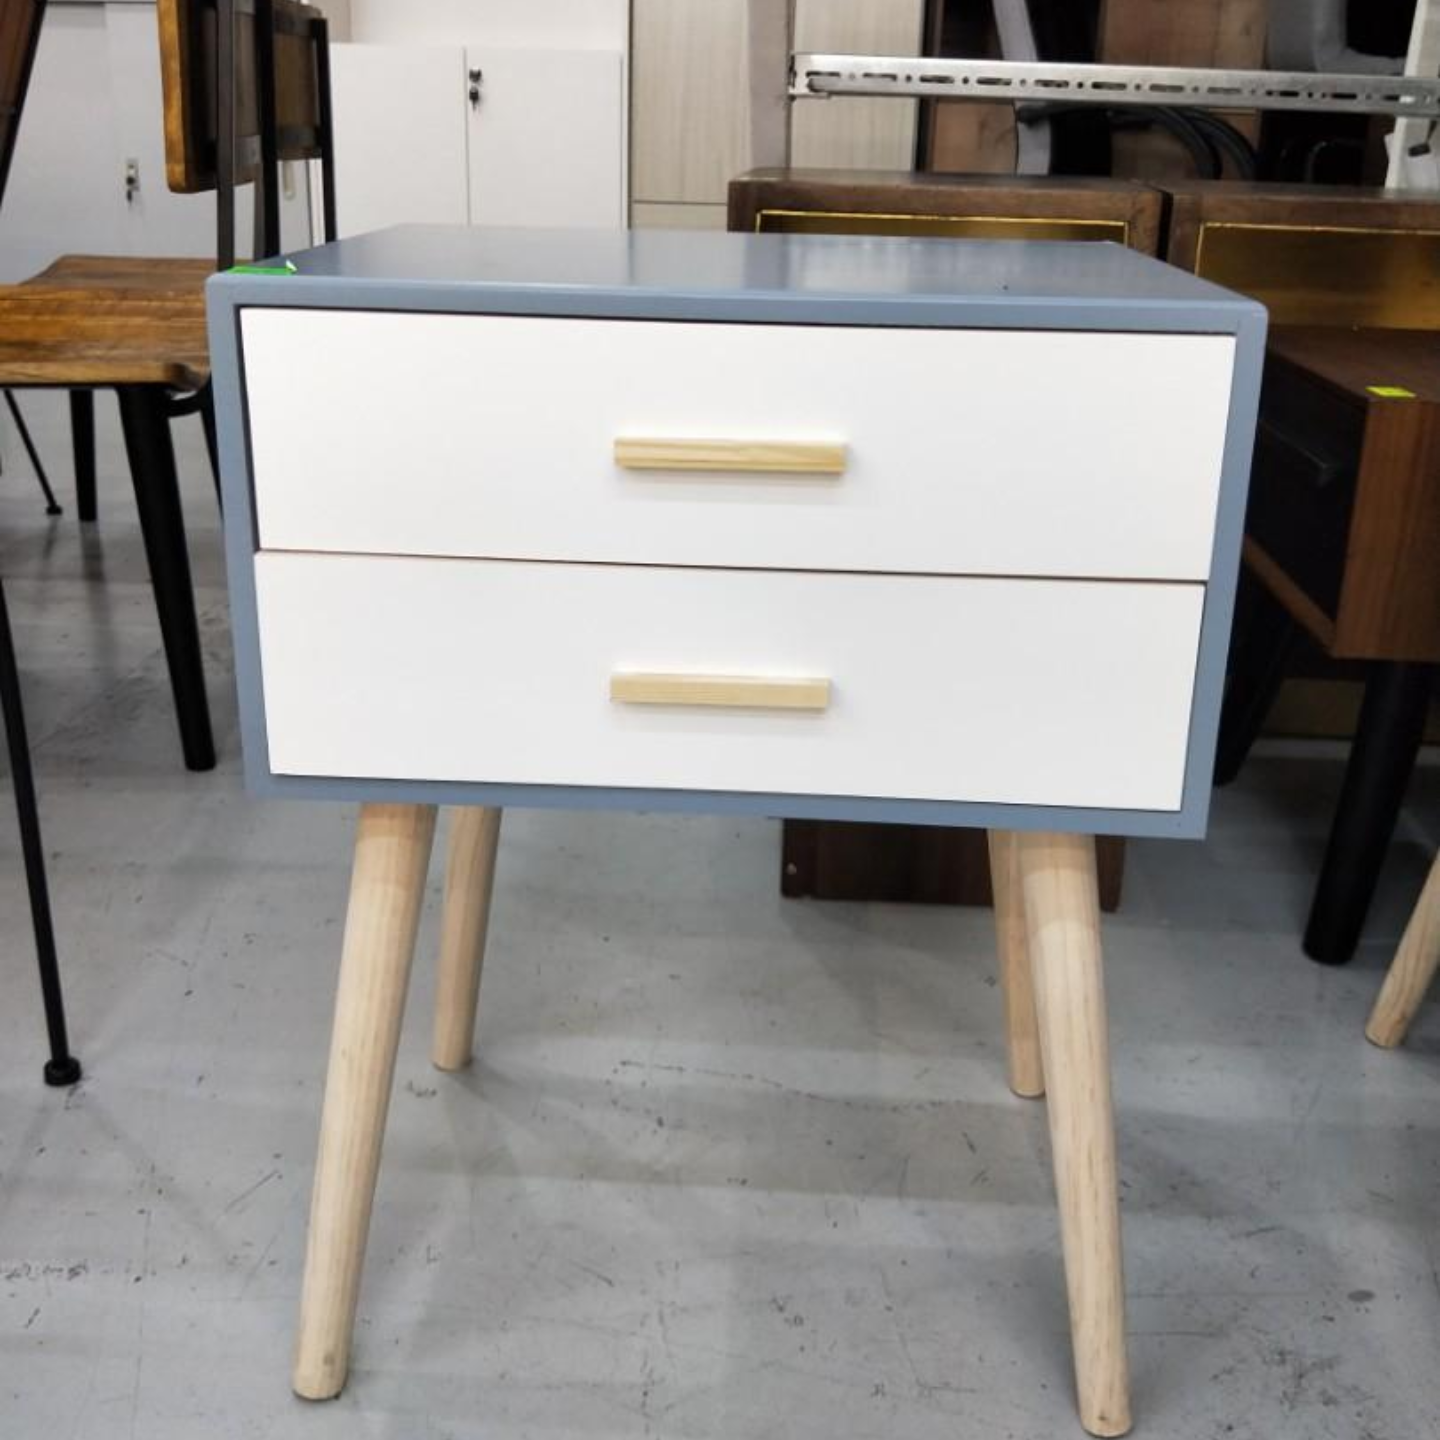 AVAS Side Table in BABY BLUE and WHITE (DEFECT)